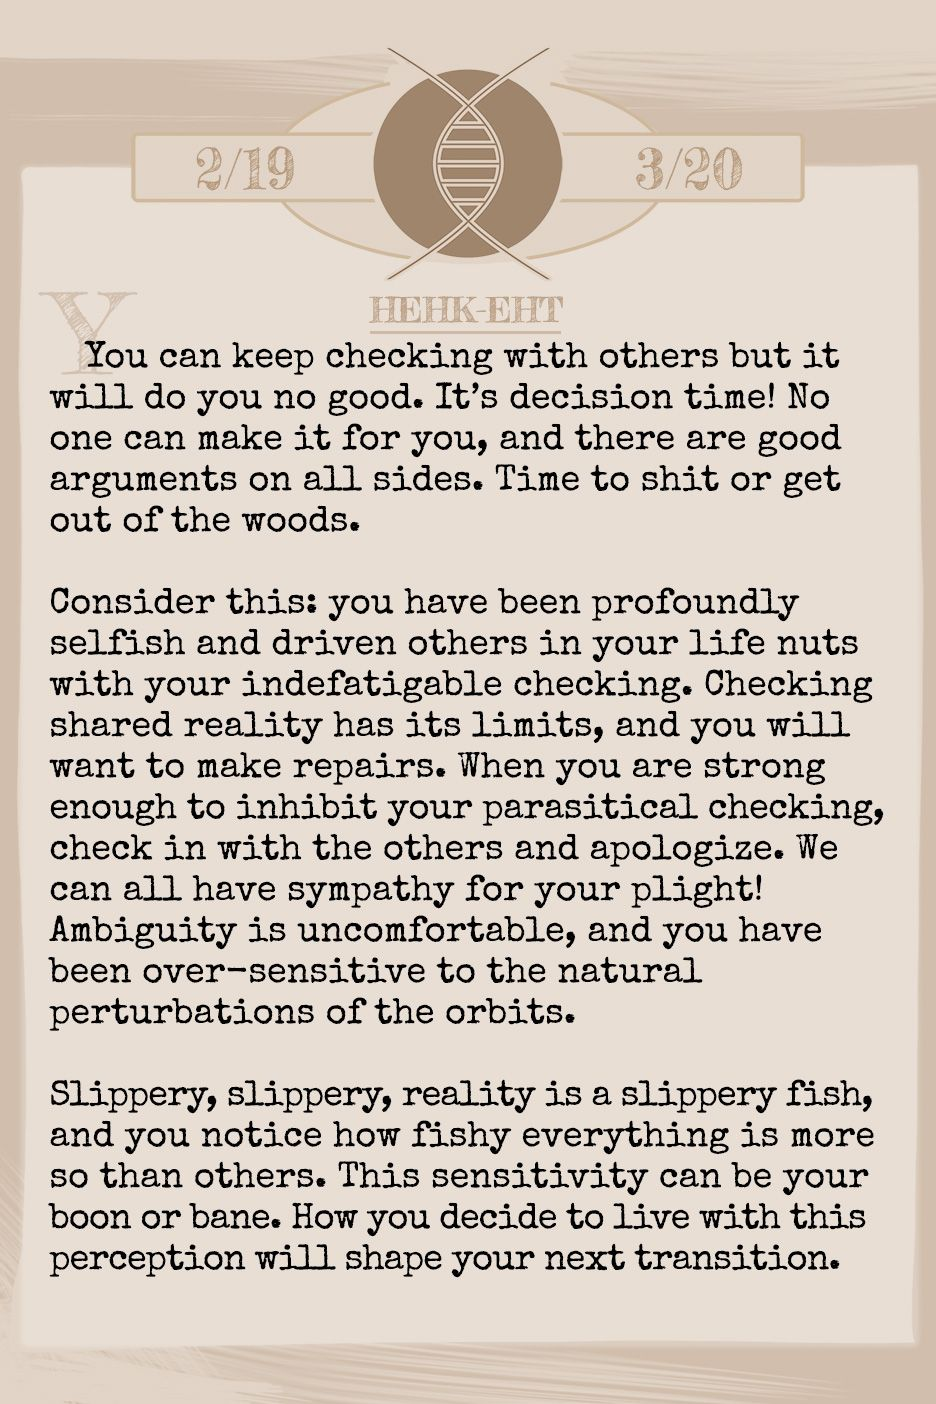 May 2019 Horoscope (Old sign: Pisces) You can keep checking with others but it will do you no good. It's decision time! No one can make it for you, and there are good arguments on all sides. Time to shit or get out of the woods. Consider this: you have been profoundly selfish and driven others in your life nuts with your indefatigable checking. Checking shared reality has its limits, and you will want to make repairs. When you are strong enough to inhibit your parasitical checking, check in with the others and apologize. We can all have sympathy for your plight! Ambiguity is uncomfortable, and you have been over-sensitive to the natural perturbations of the orbits. Slippery, slippery, reality is a slippery fish, and you notice how fishy everything is more so than others. This sensitivity can be your boon or bane. How you decide to live with this perception will shape your next transition.